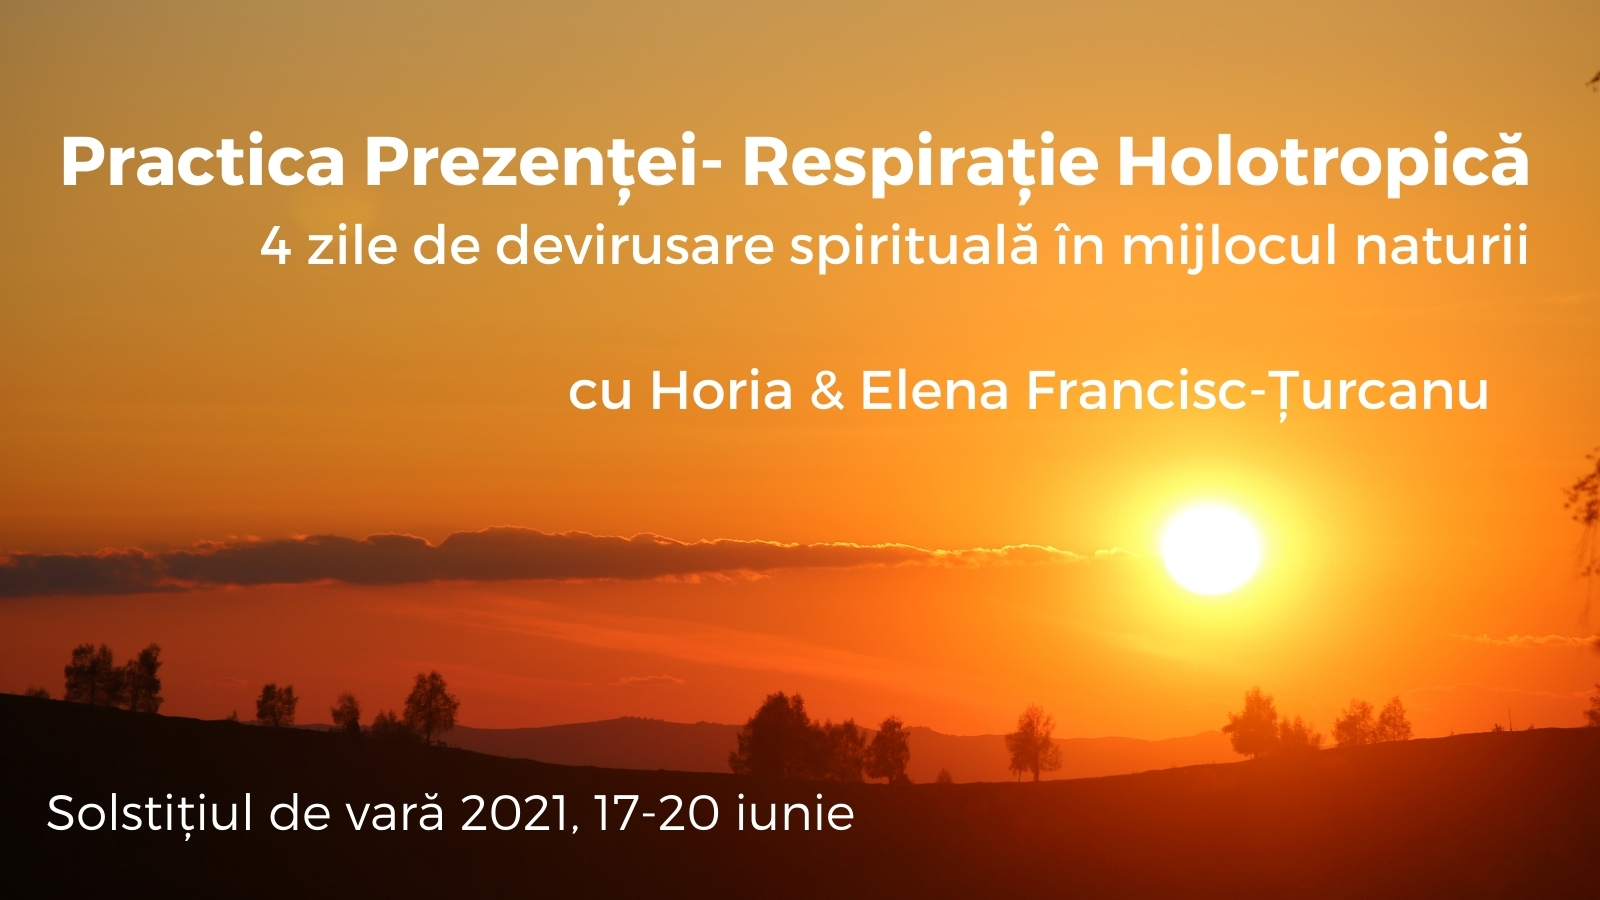 Practica Prezenței Retreat 2021